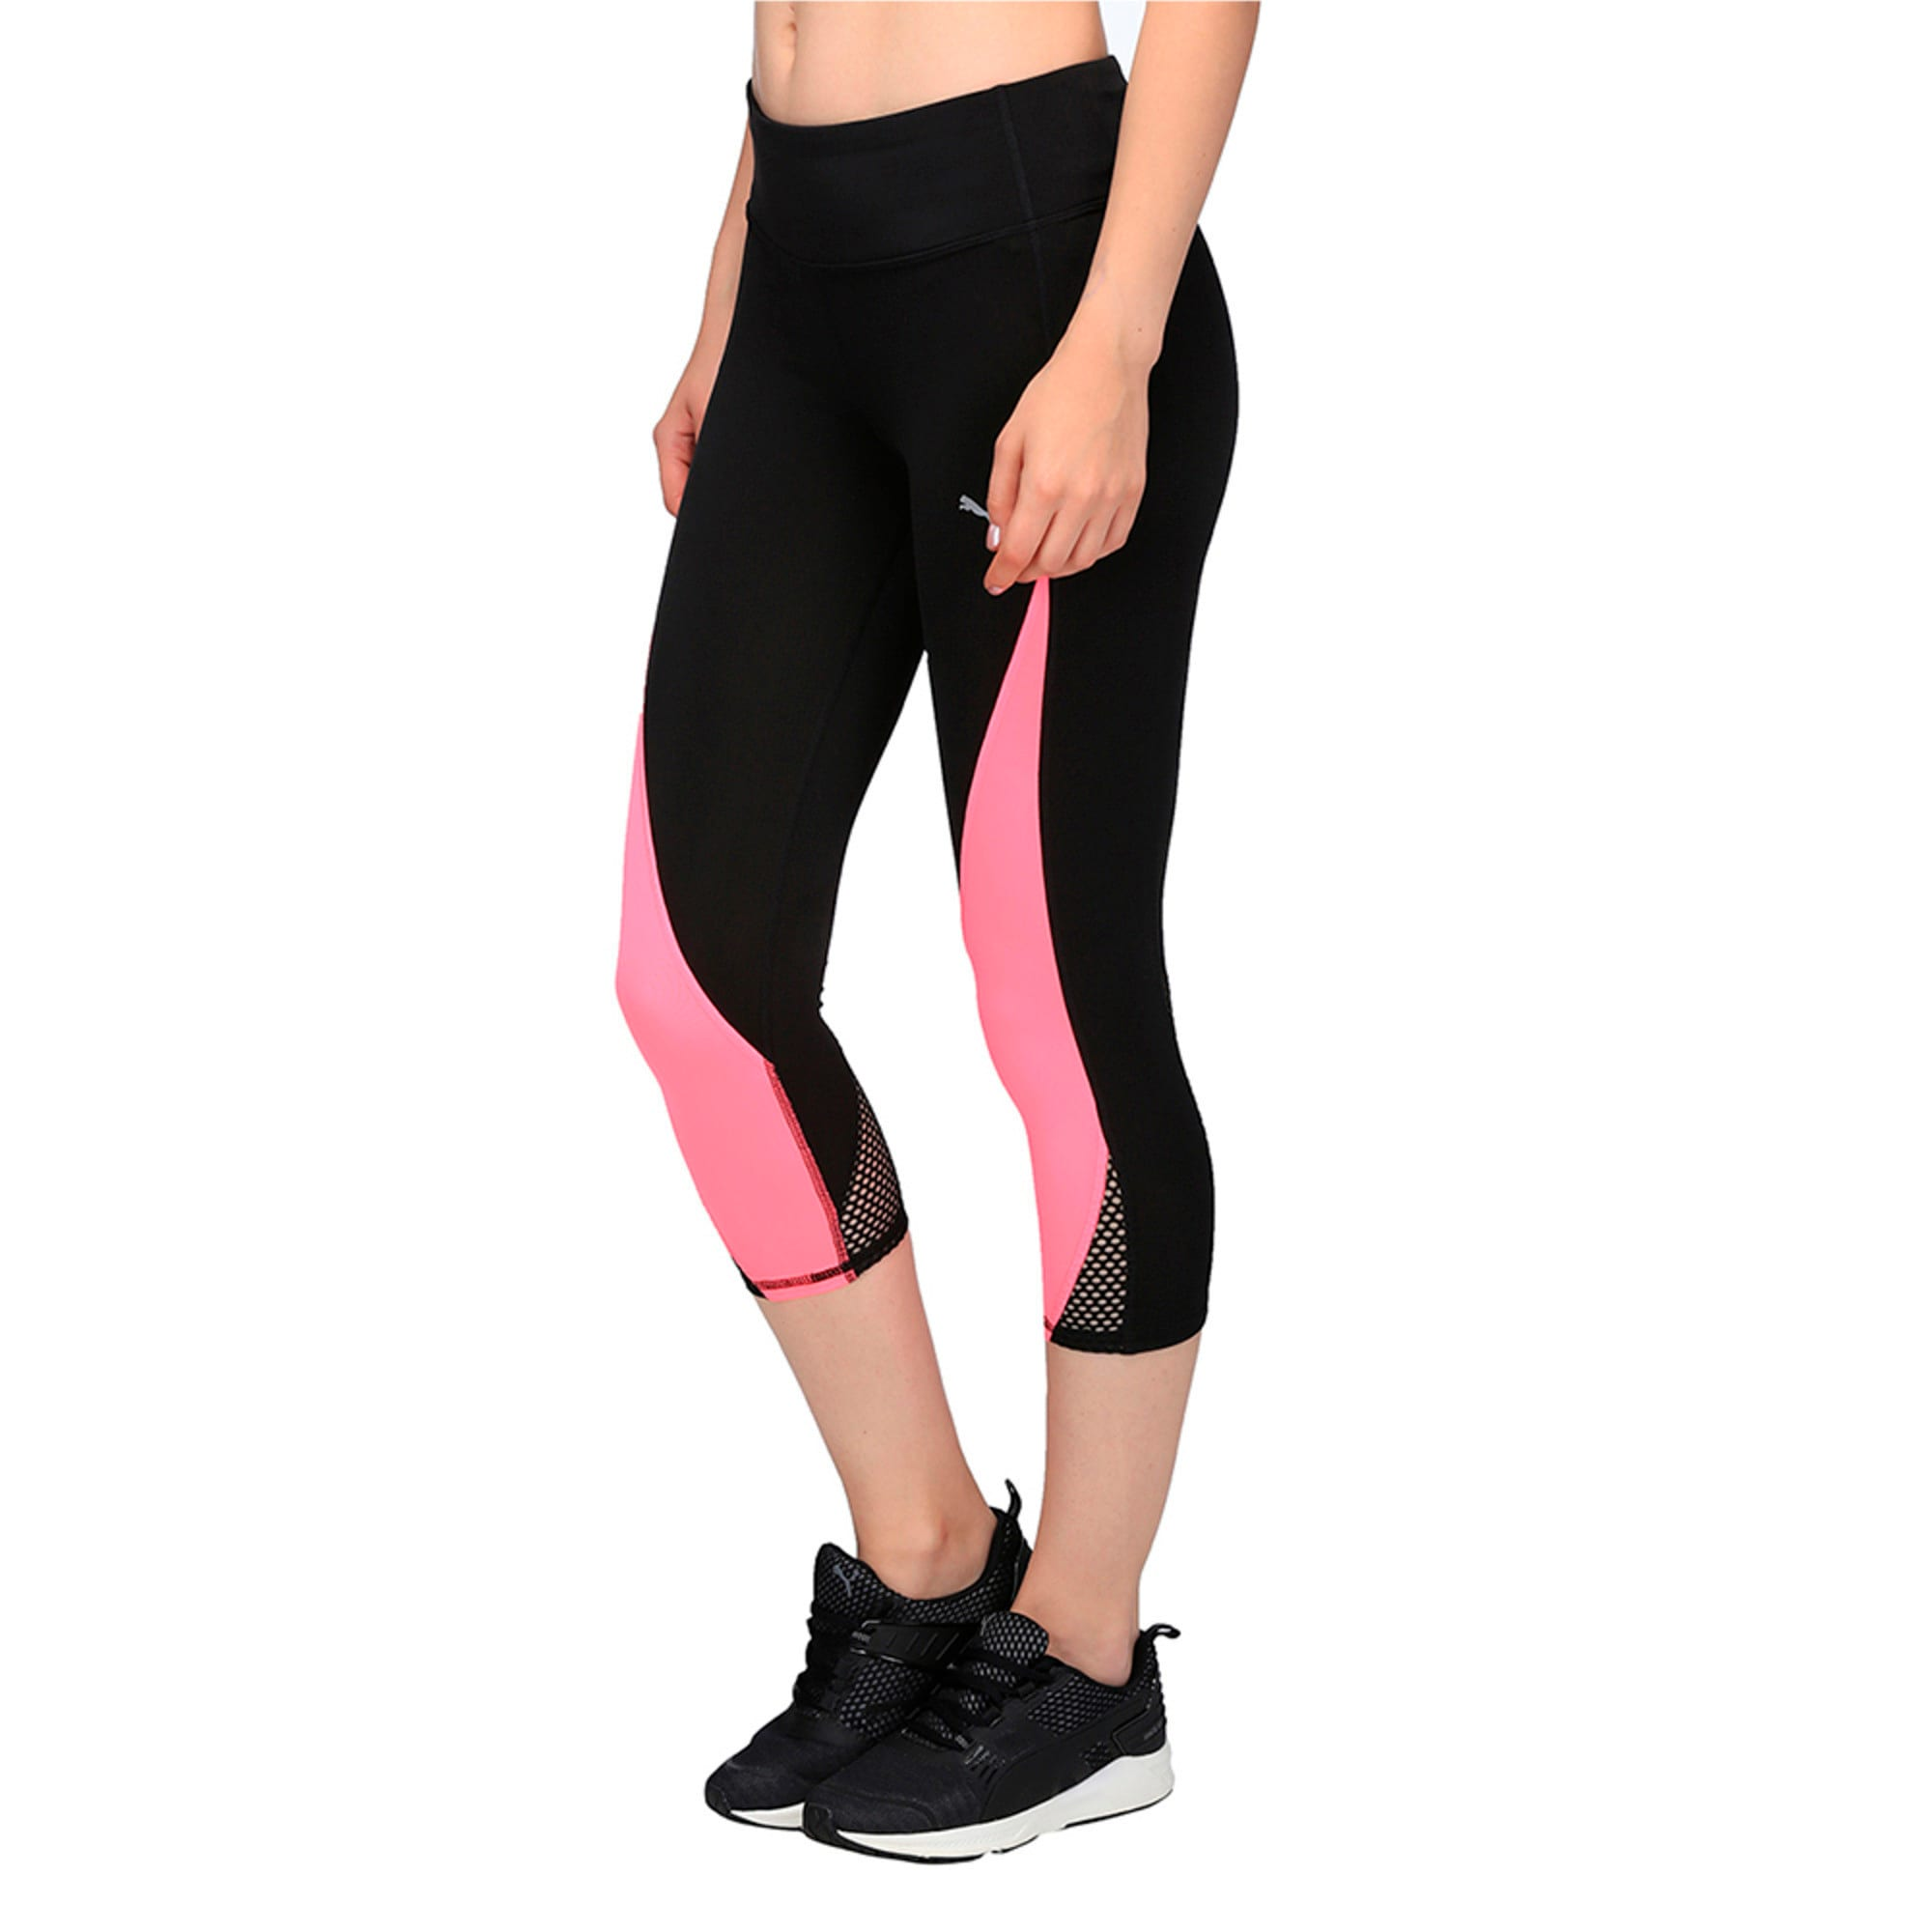 Thumbnail 3 of Active Training Women's Explosive 3/4 Tights, Puma Black-KNOCKOUT PINK, medium-IND